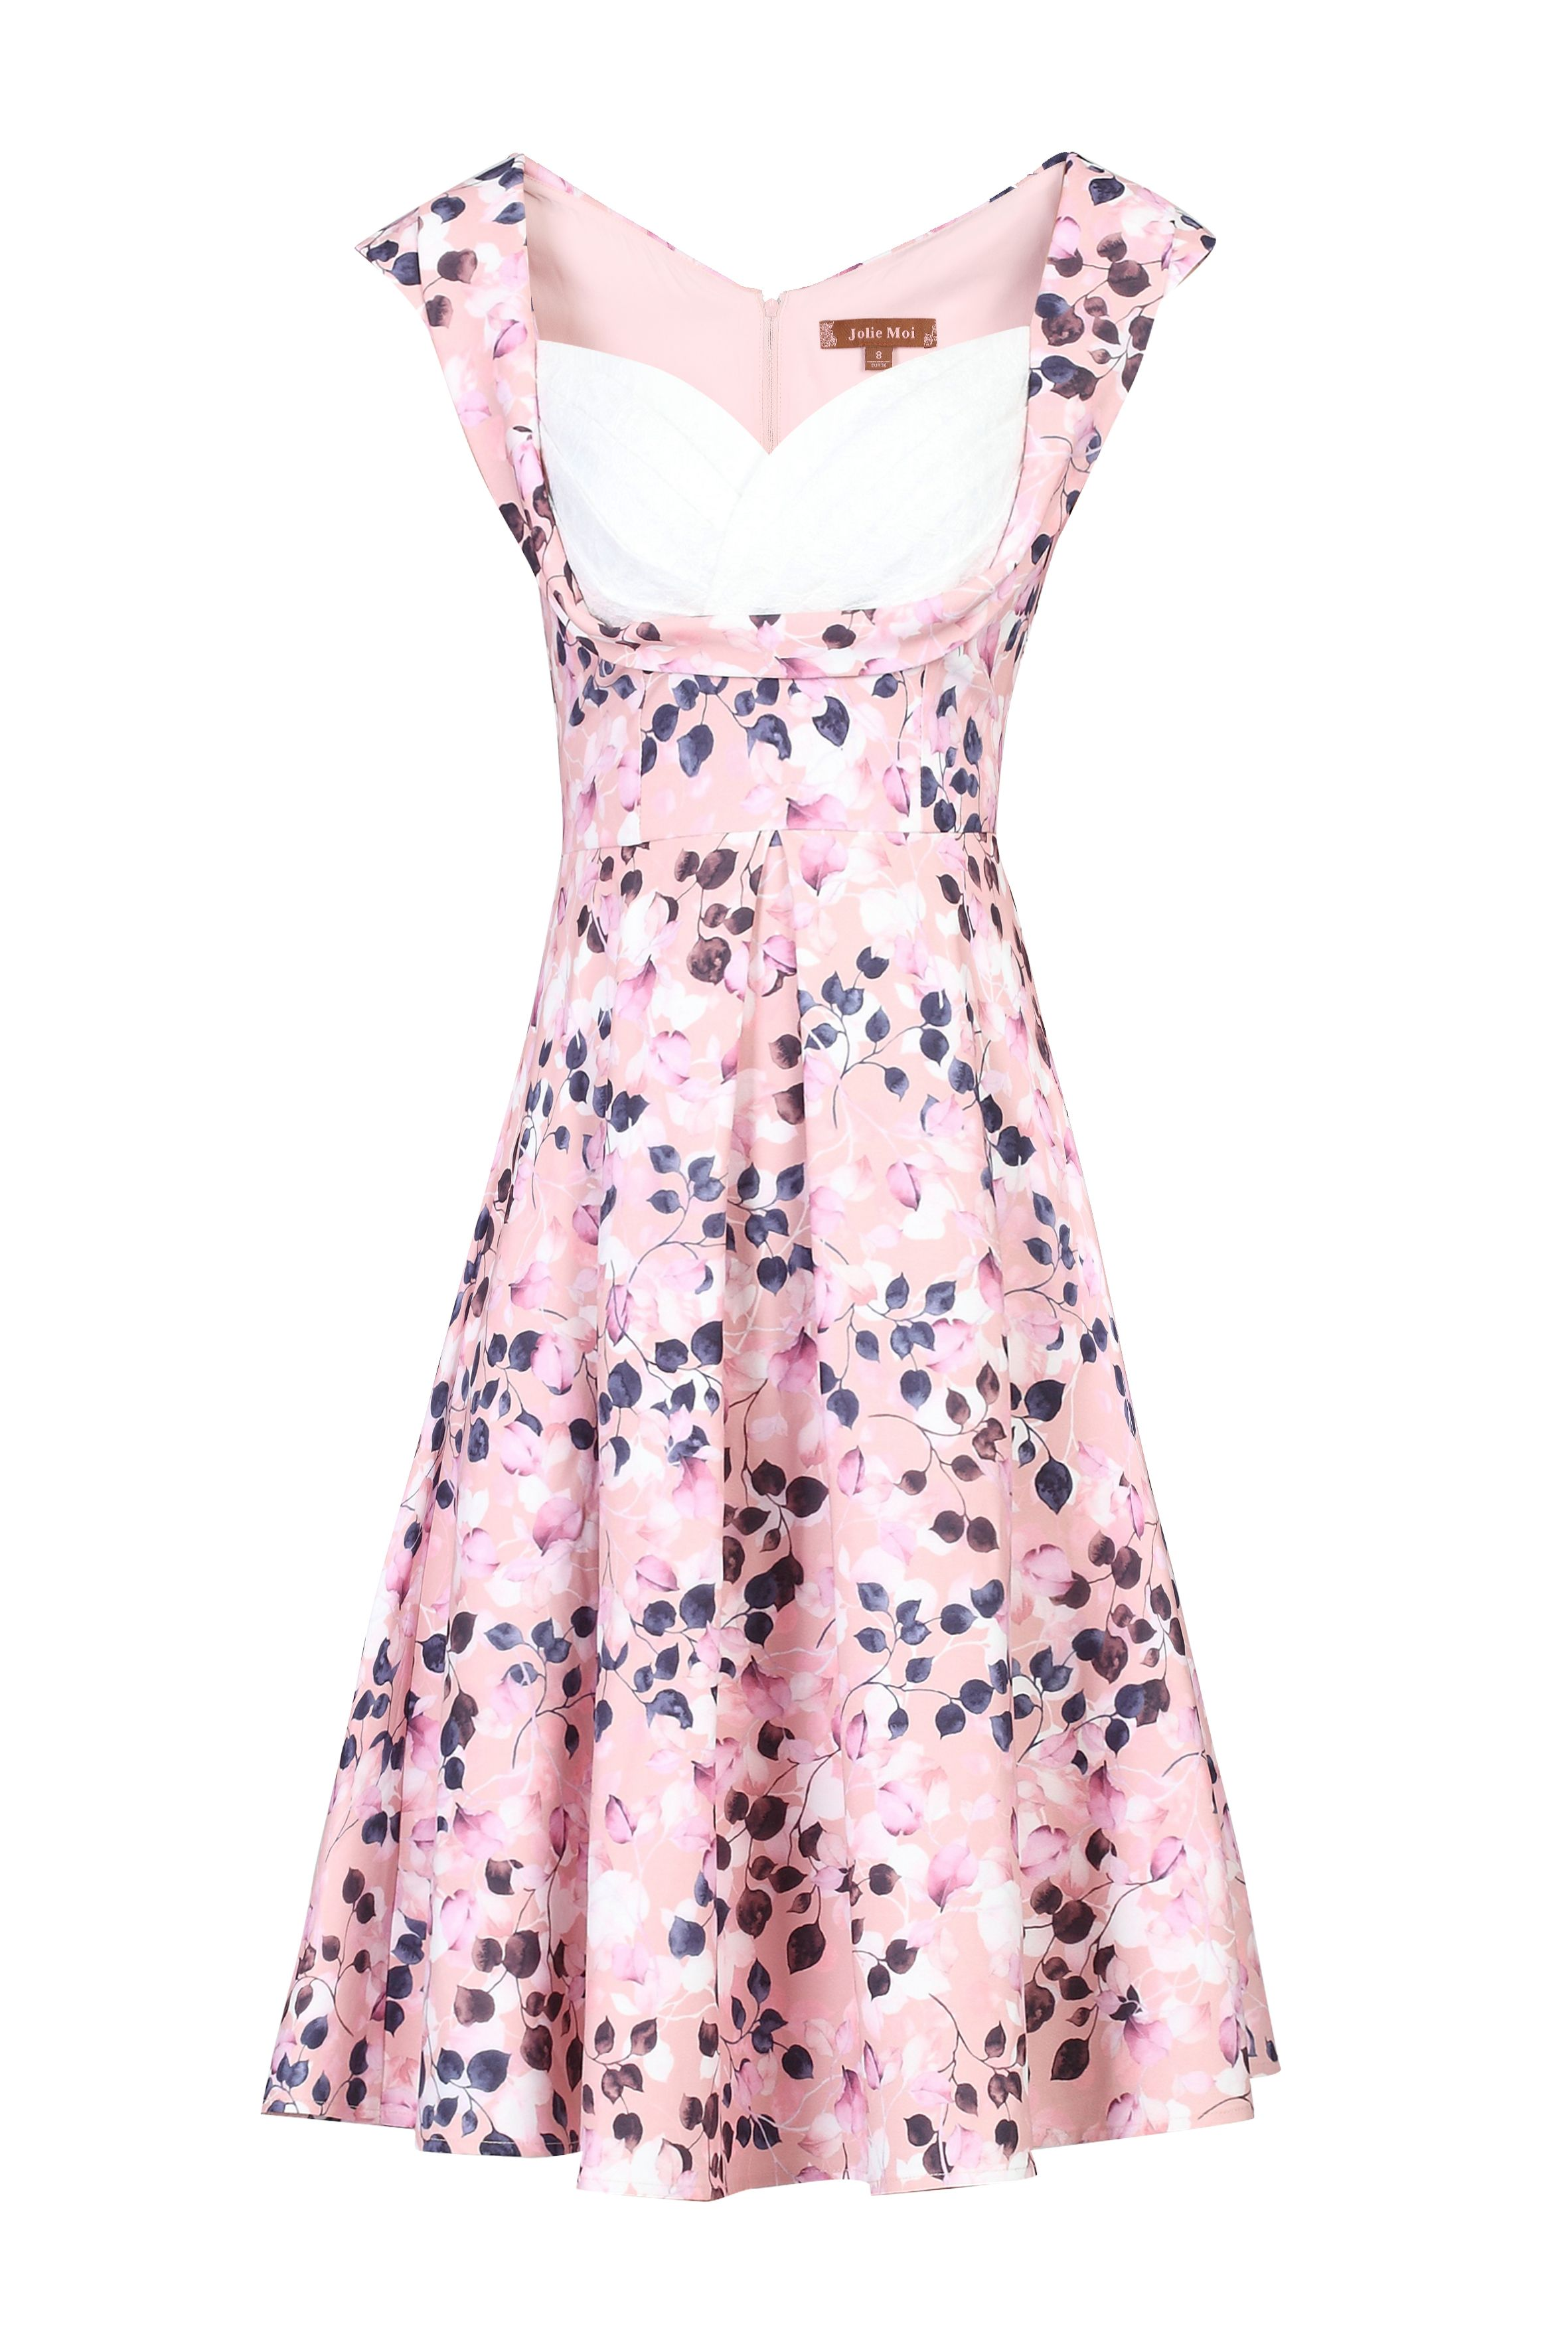 Jolie Moi Floral Print Crossover Bust Dress, Pink